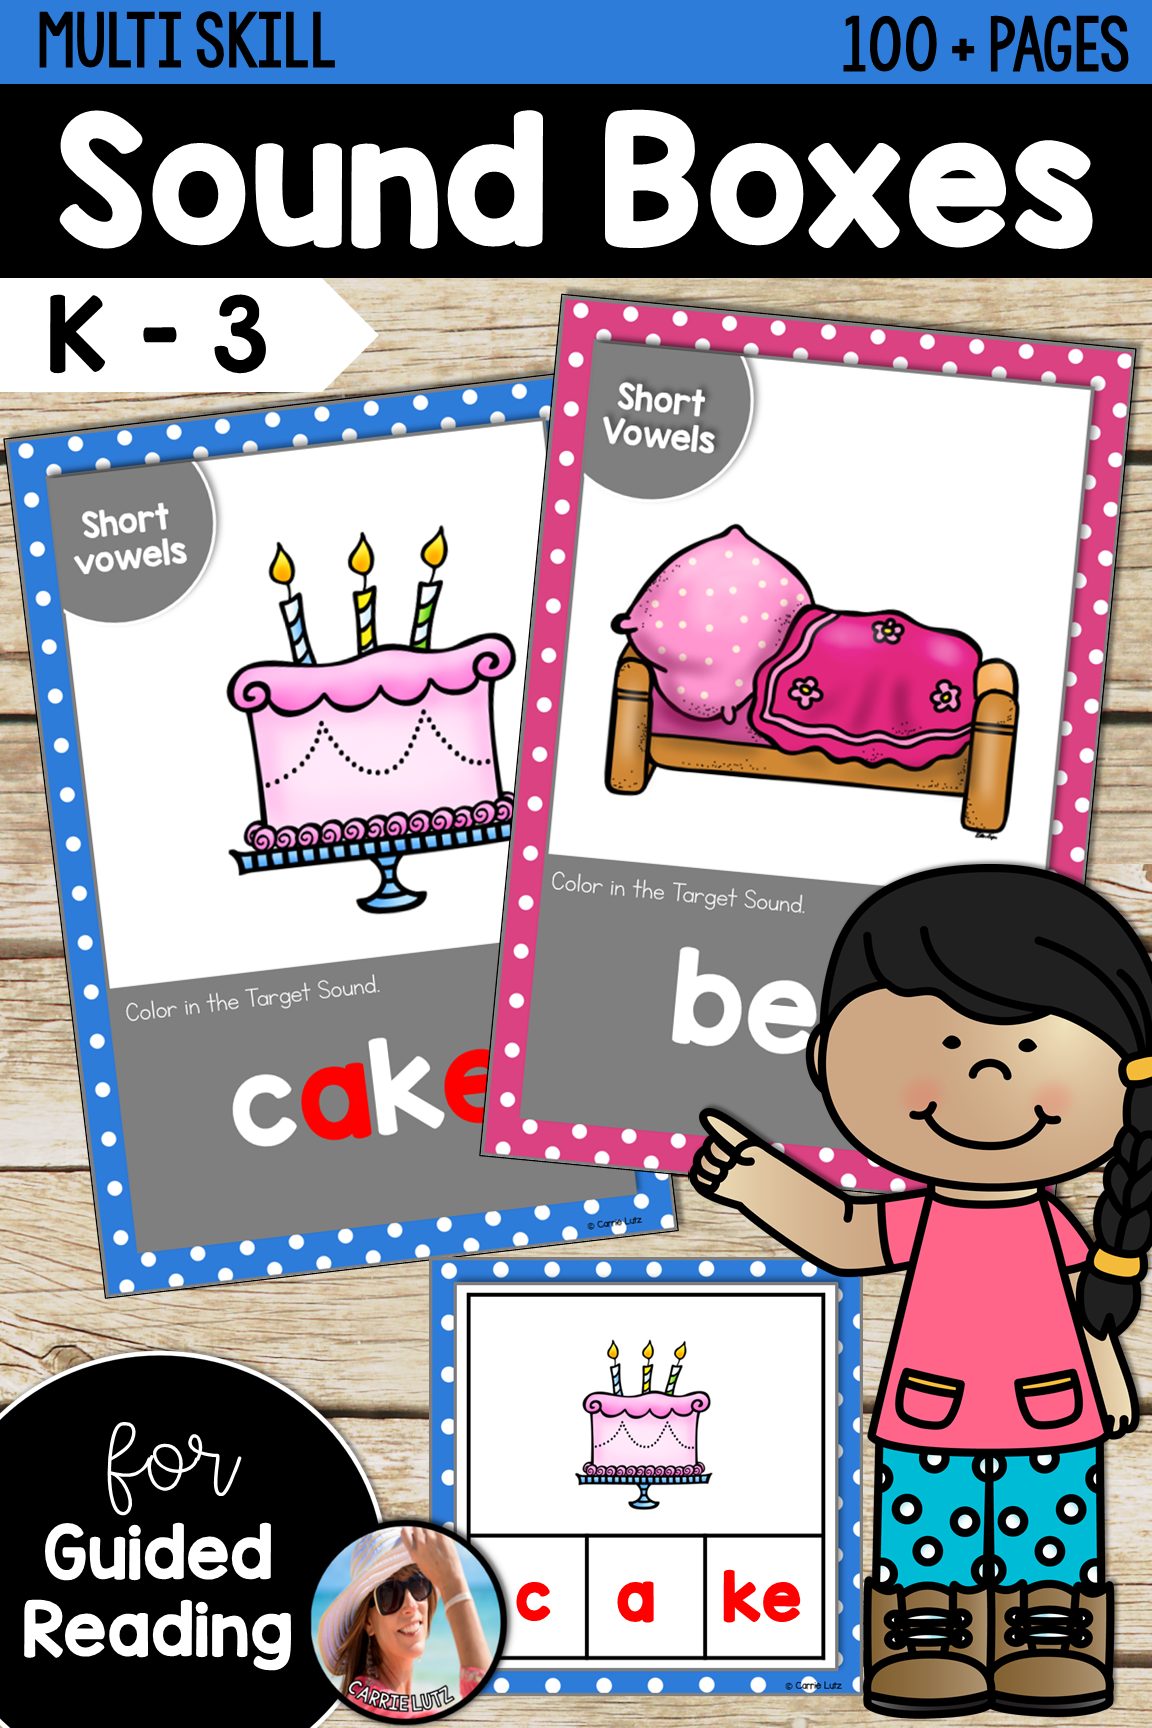 Sound Boxes For Spelling With Images